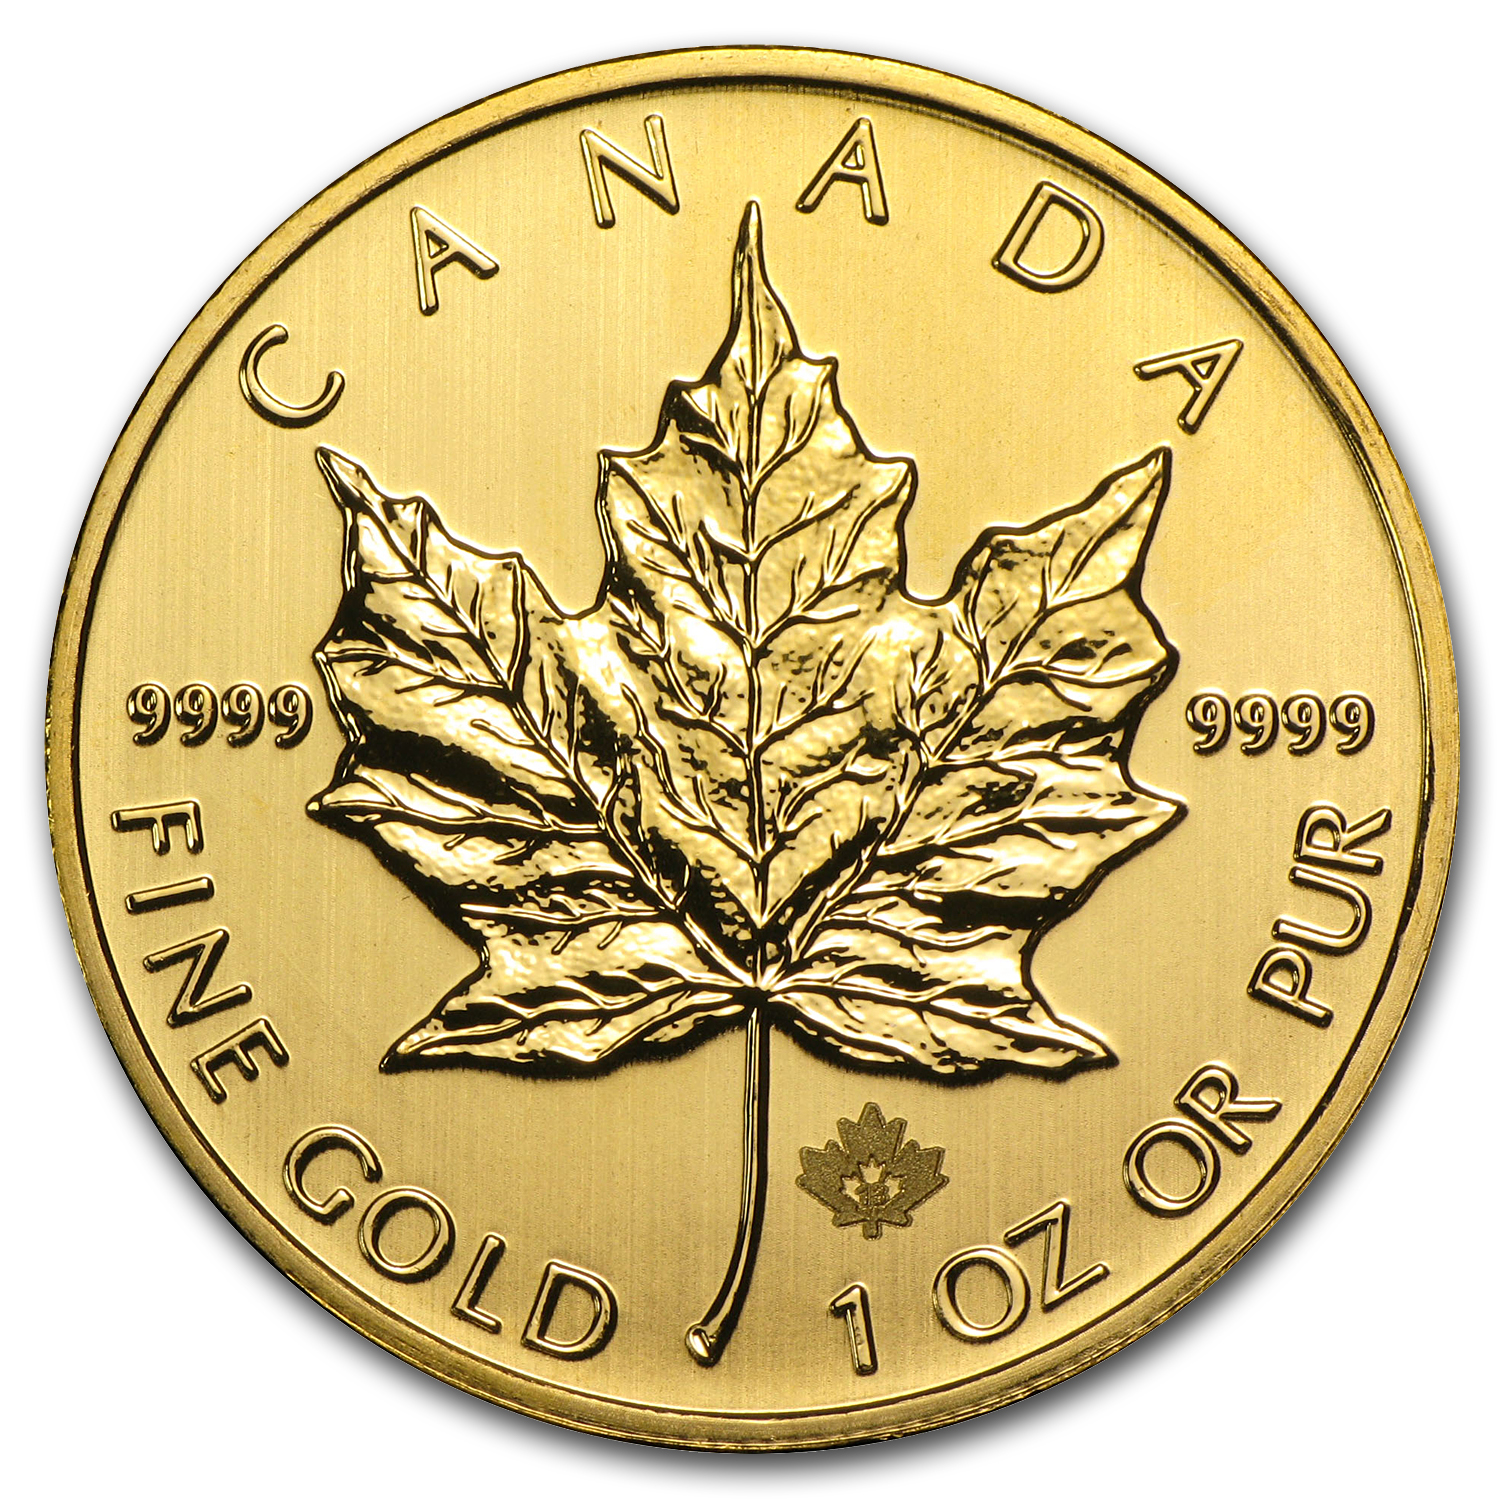 2013 1 oz Gold Canadian Maple Leaf